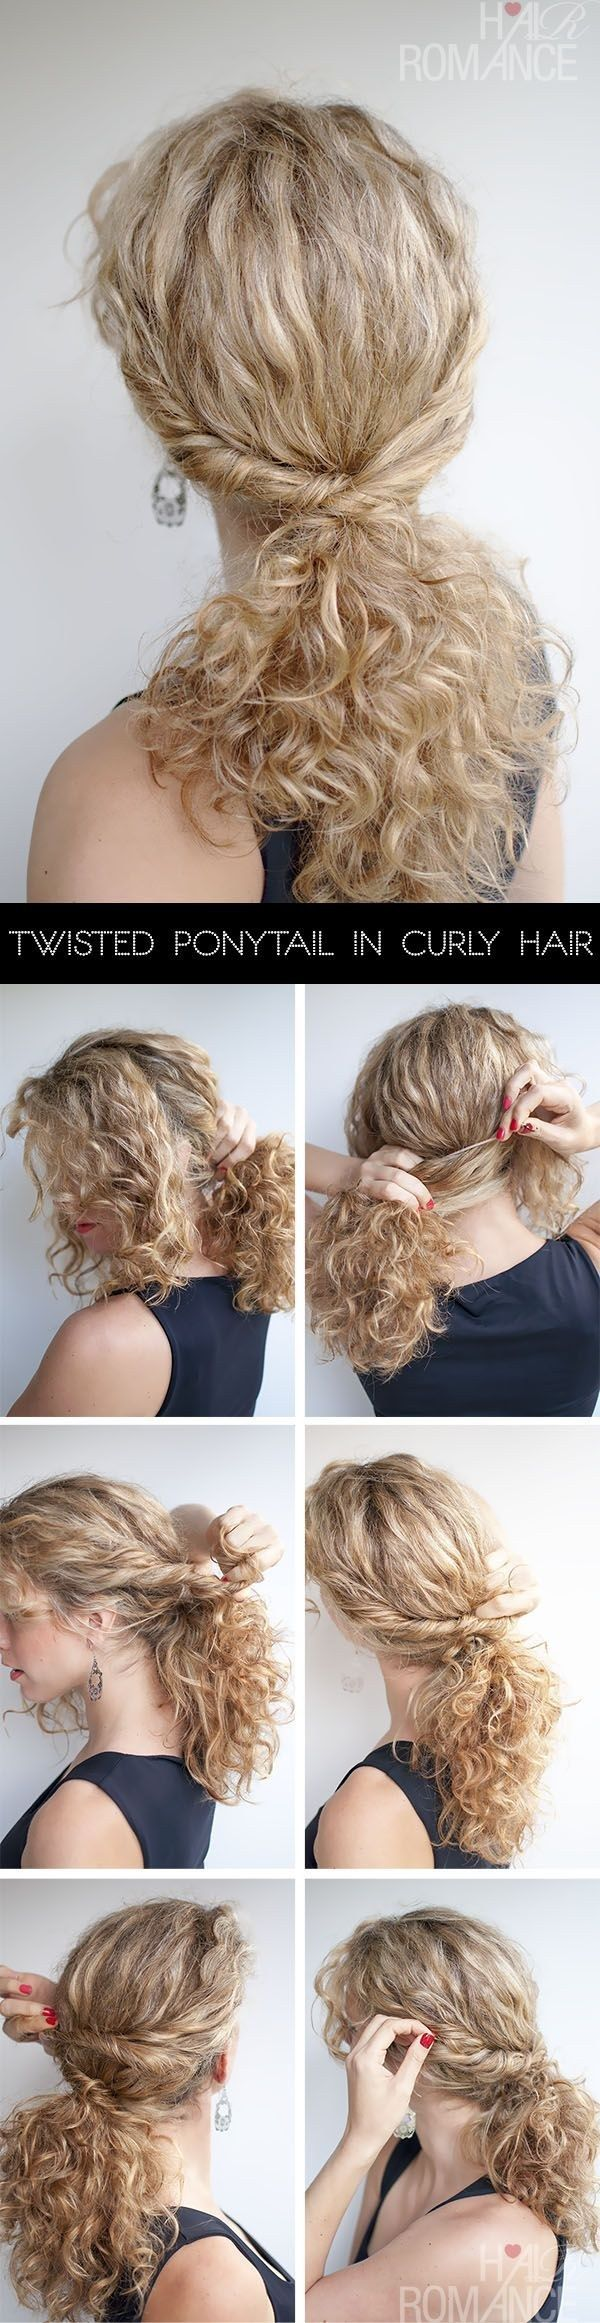 Curly hair? The pony don't care. | Community Post: 21 Reasons Ponytails Are The Best Hairstyle Ever Invented